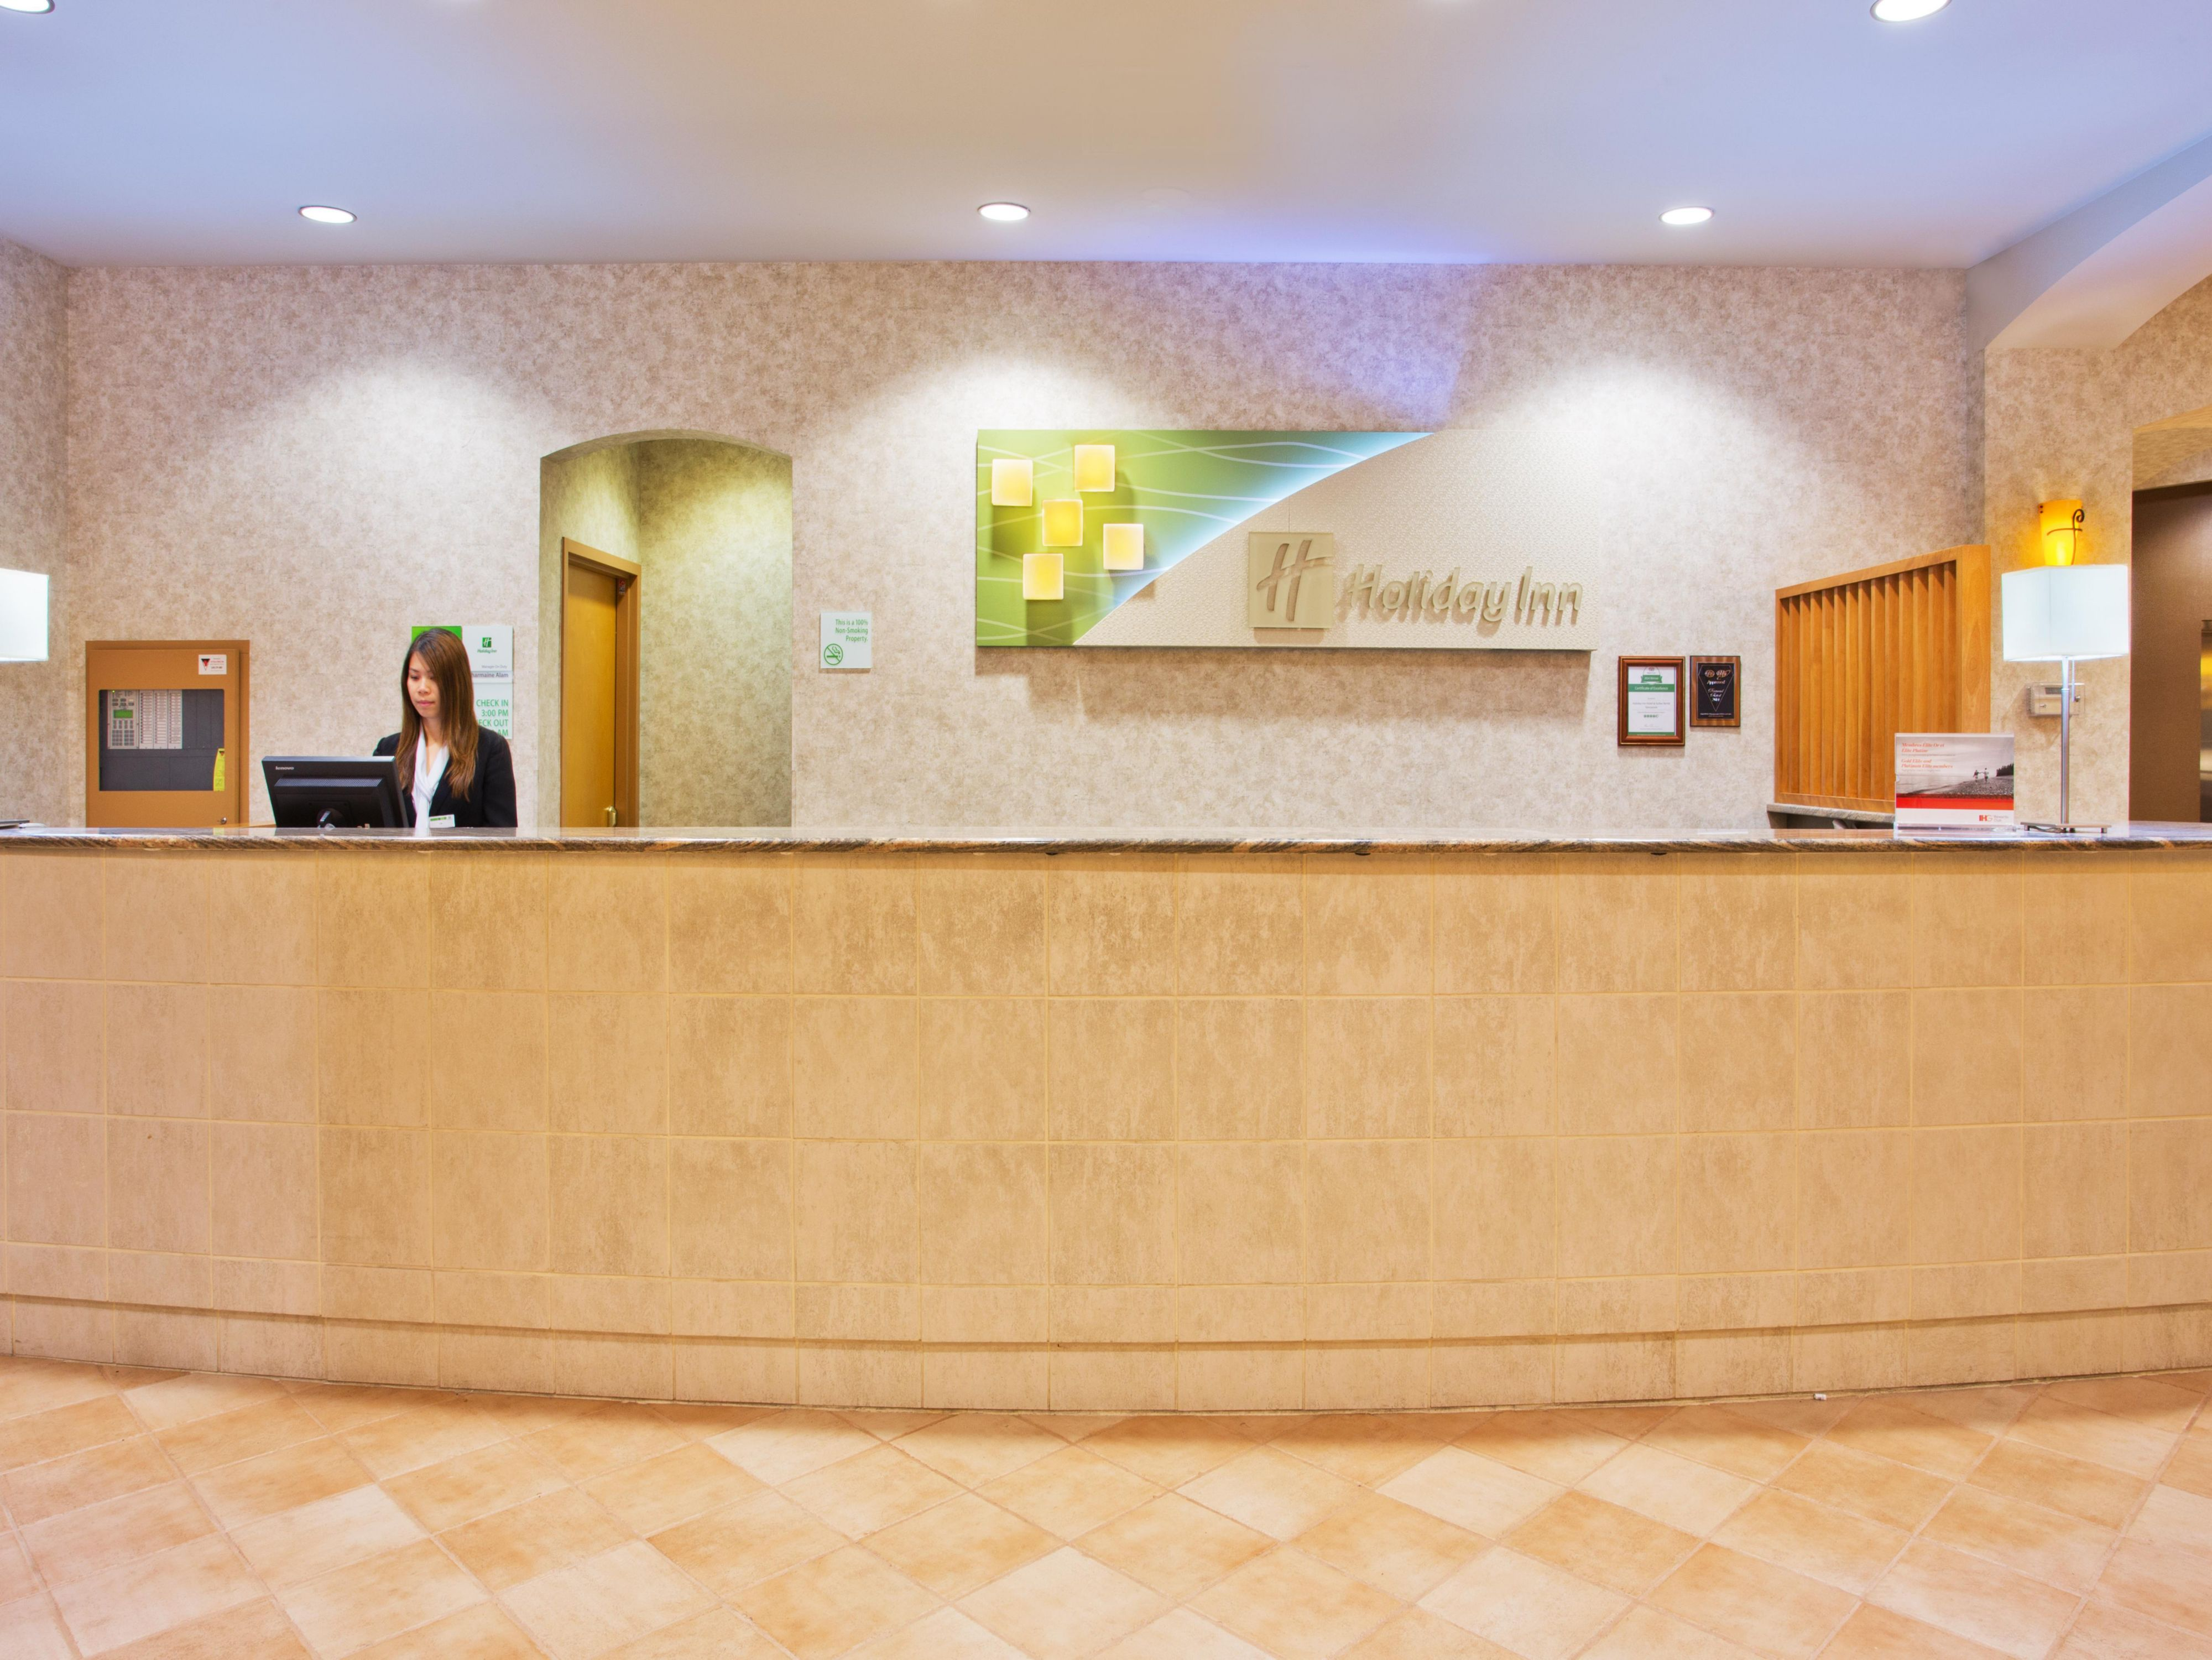 Our front desk team welcomes you